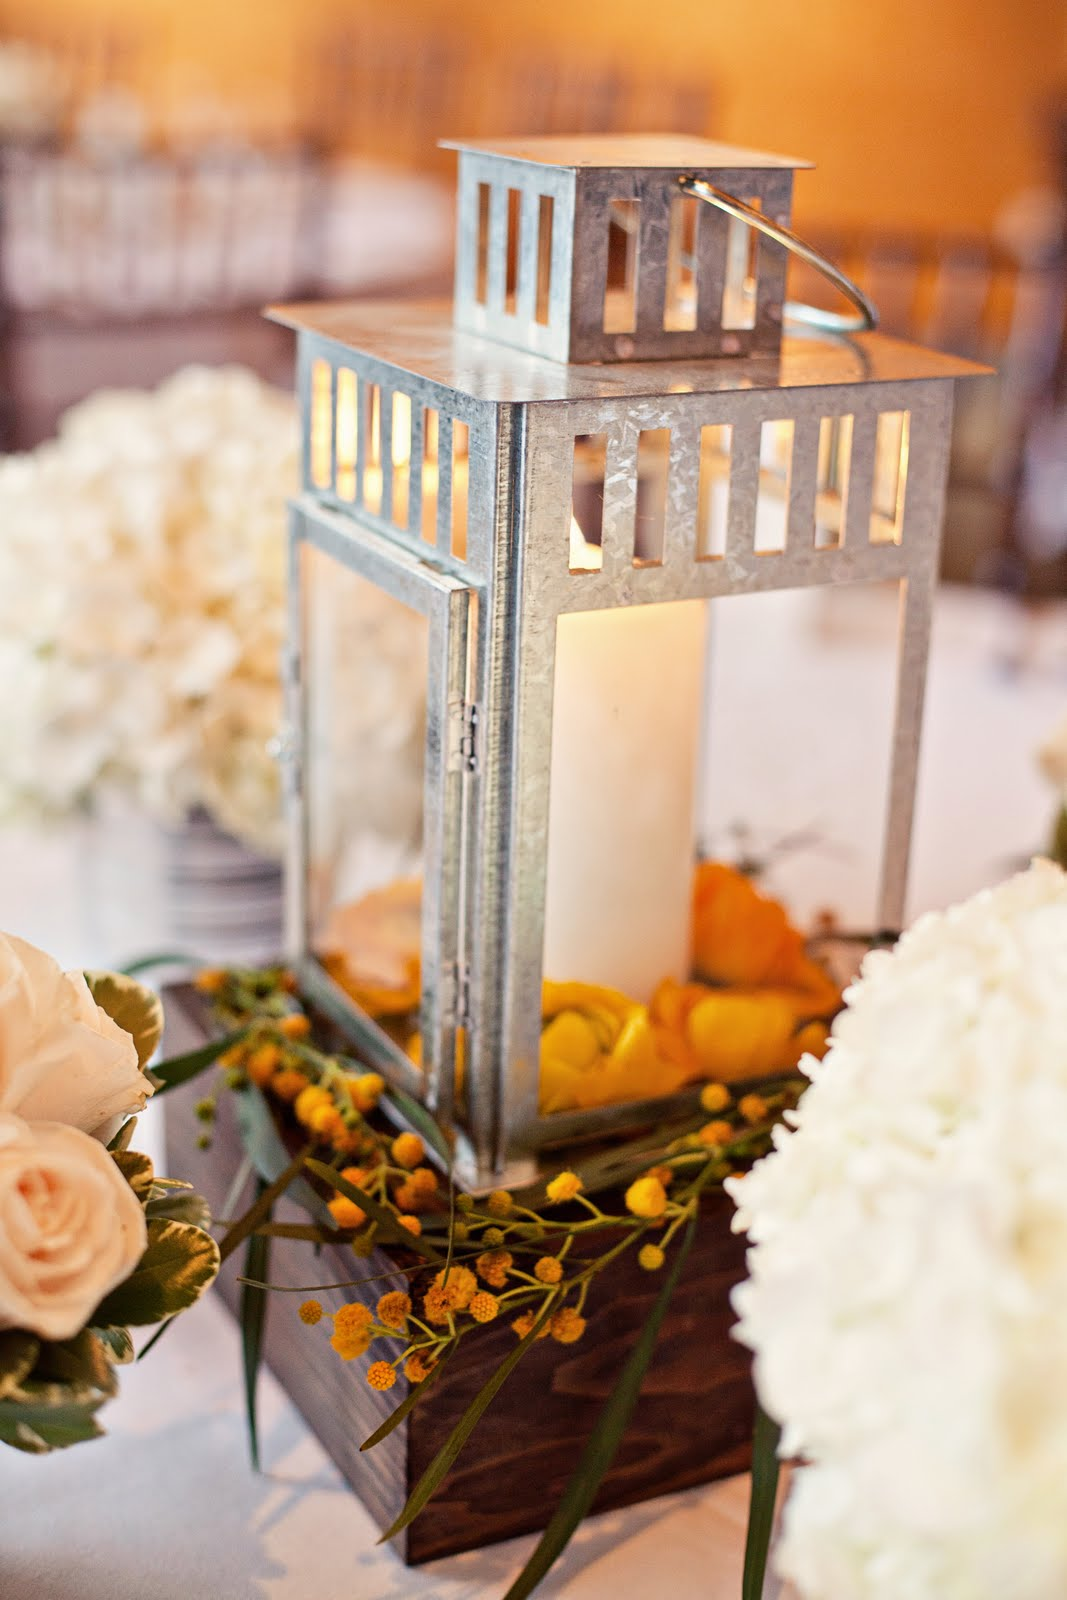 All About Weddings  Tips on planning your dream wedding